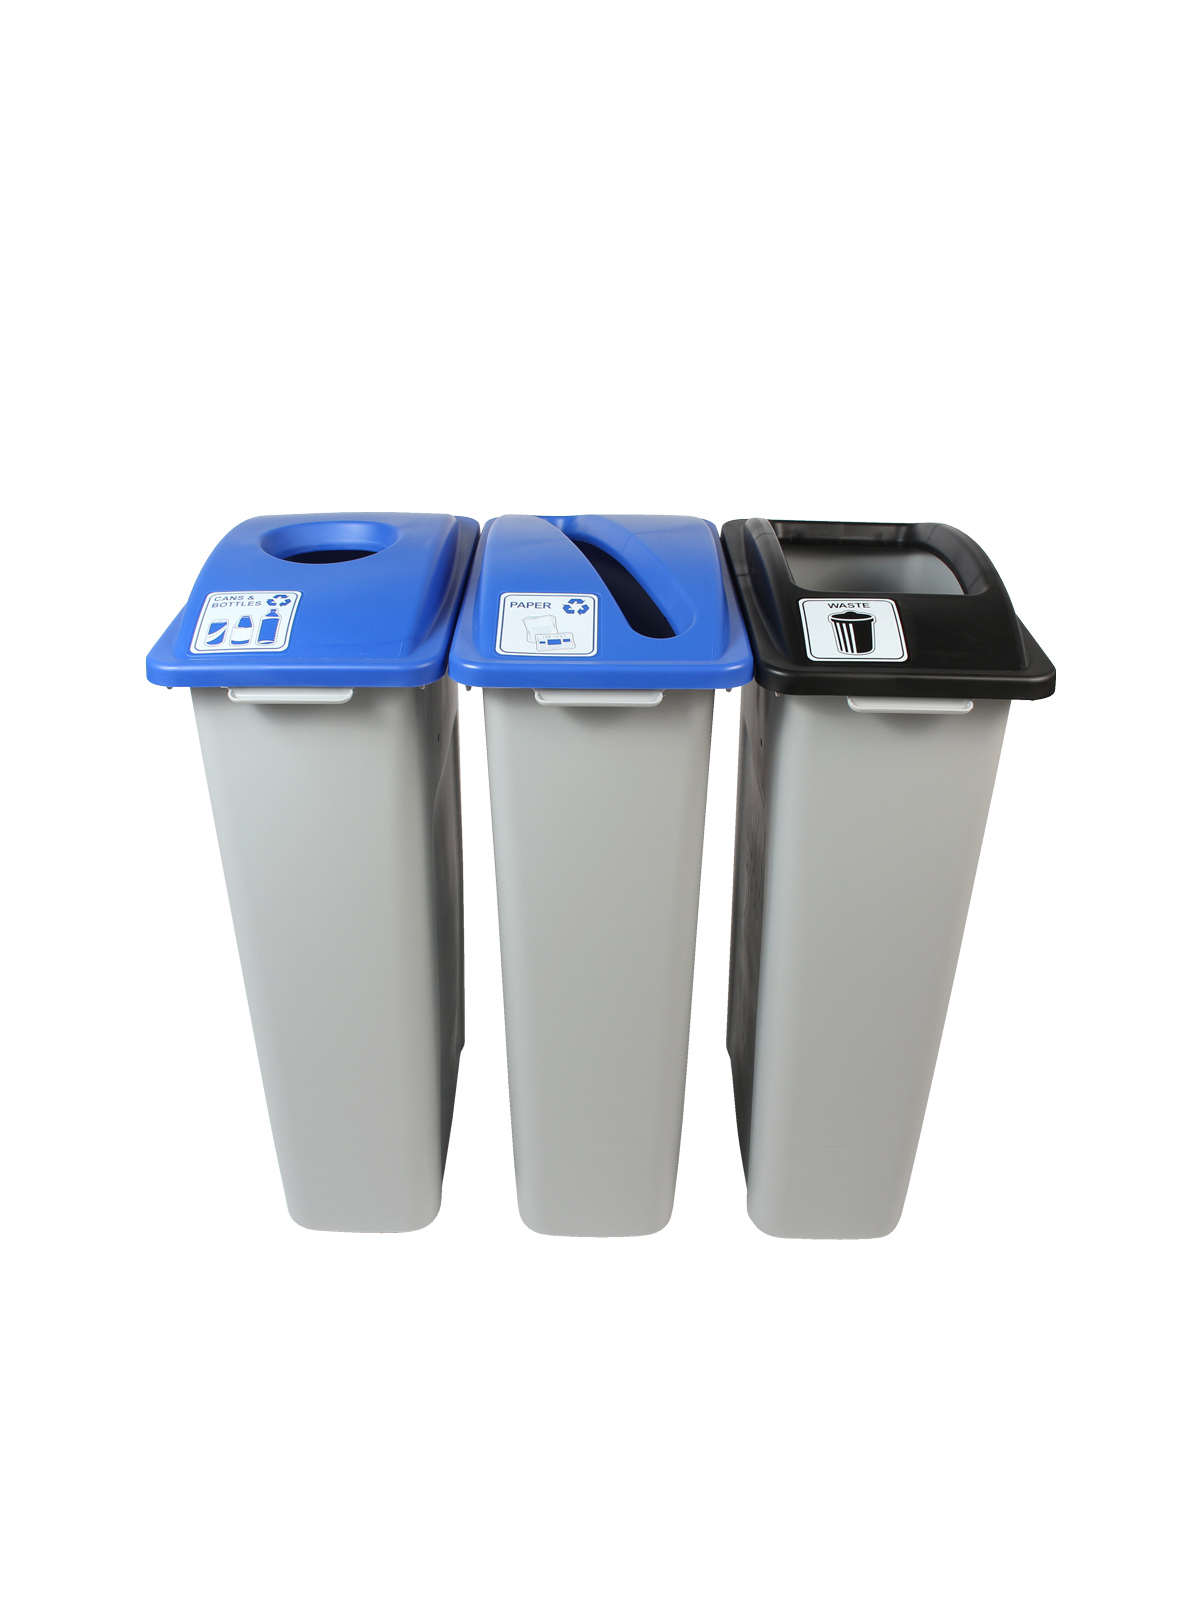 WASTE WATCHER - Triple - Cans & Bottles-Paper-Waste - Circle-Slot-Full - Grey-Blue-Blue-Black